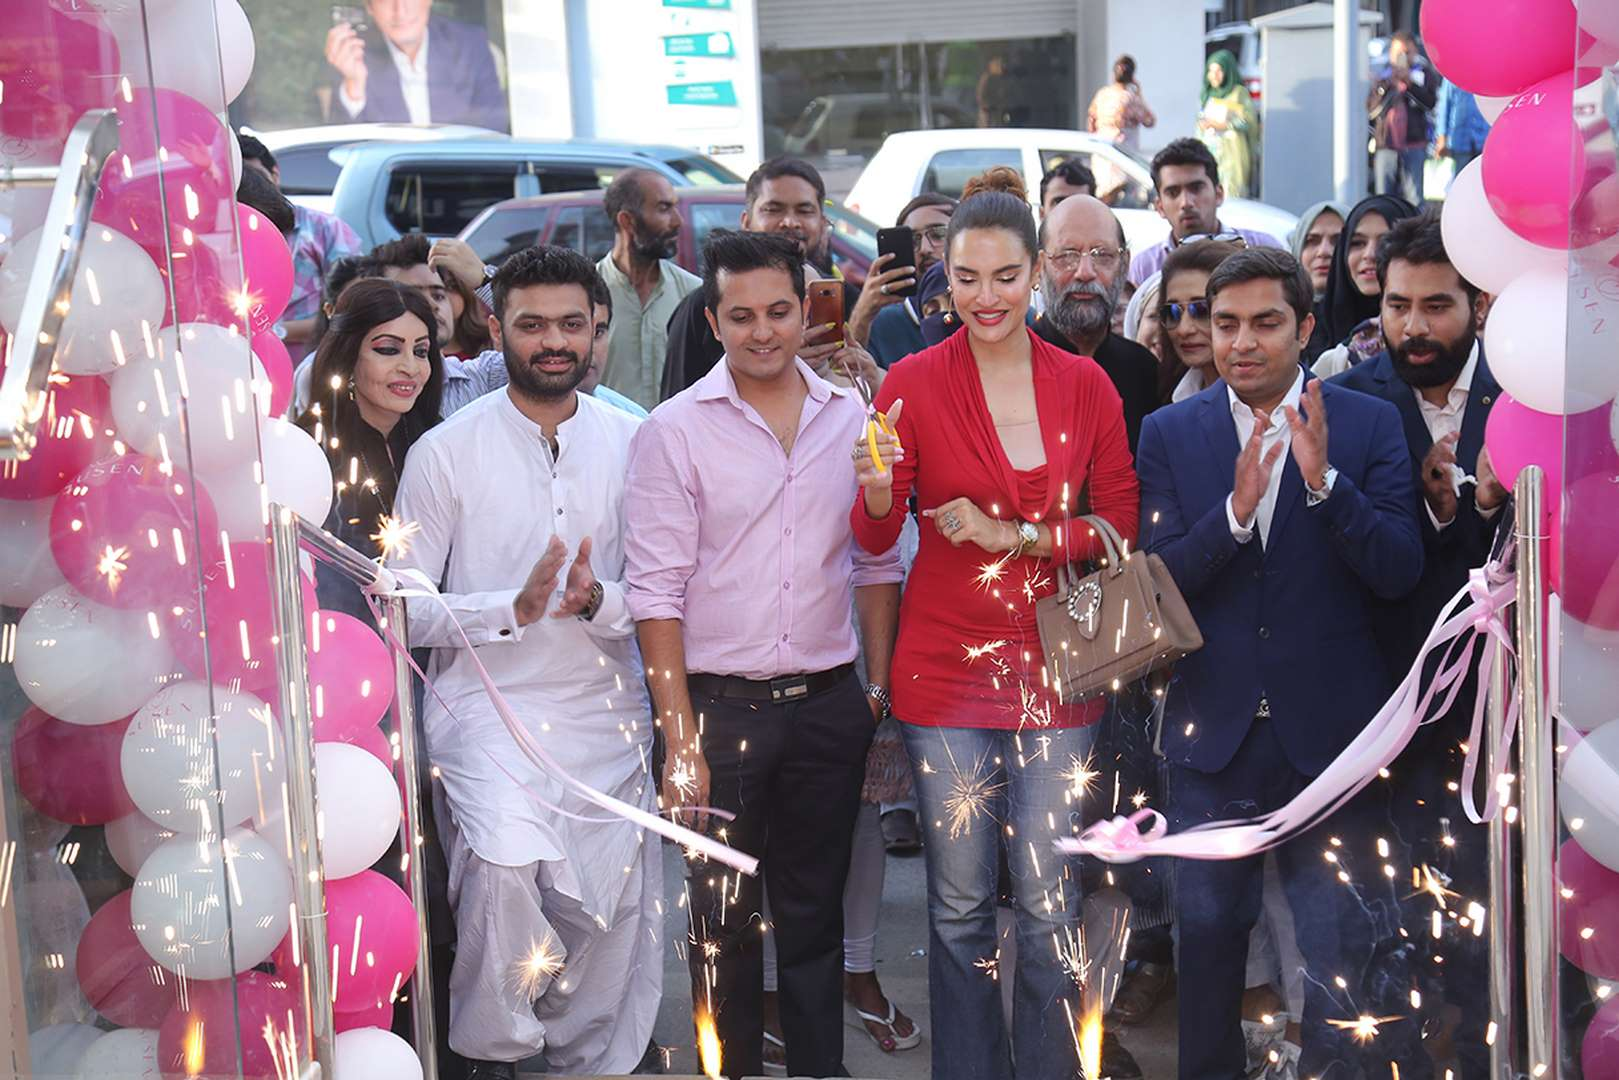 The opening was marked by a ribbon-cutting ceremony by the glamorous Nadia Hussain